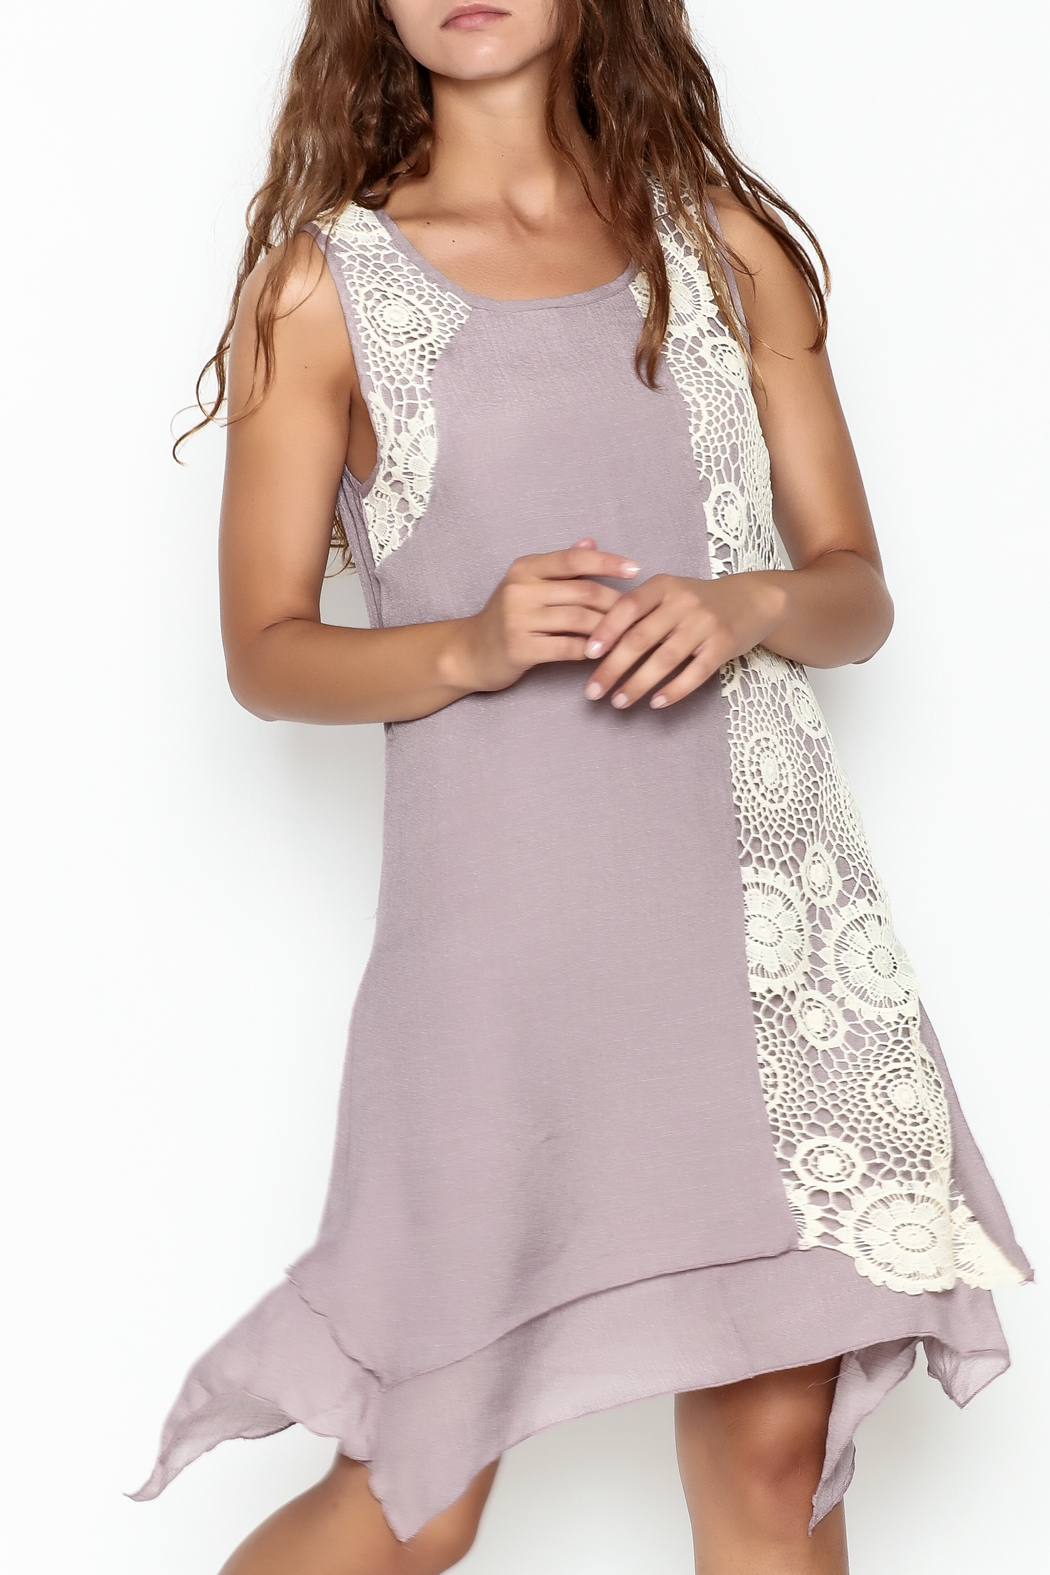 Coco + Carmen Crochet Overlay Dress - Main Image